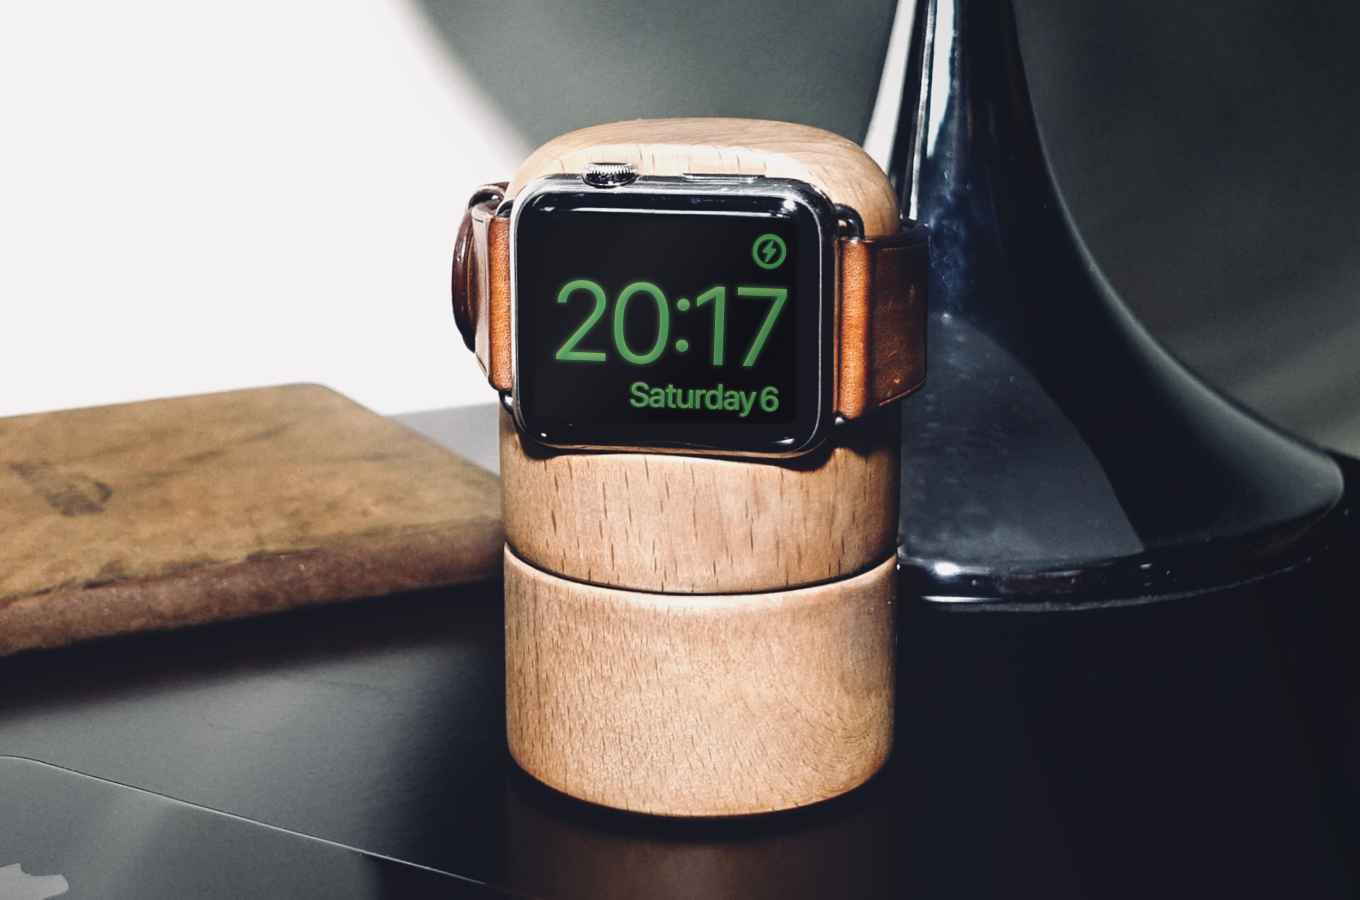 TotmTravl = Apple Watch wooden Dock AND Smart Power-bank (Homekit / IFTTT)